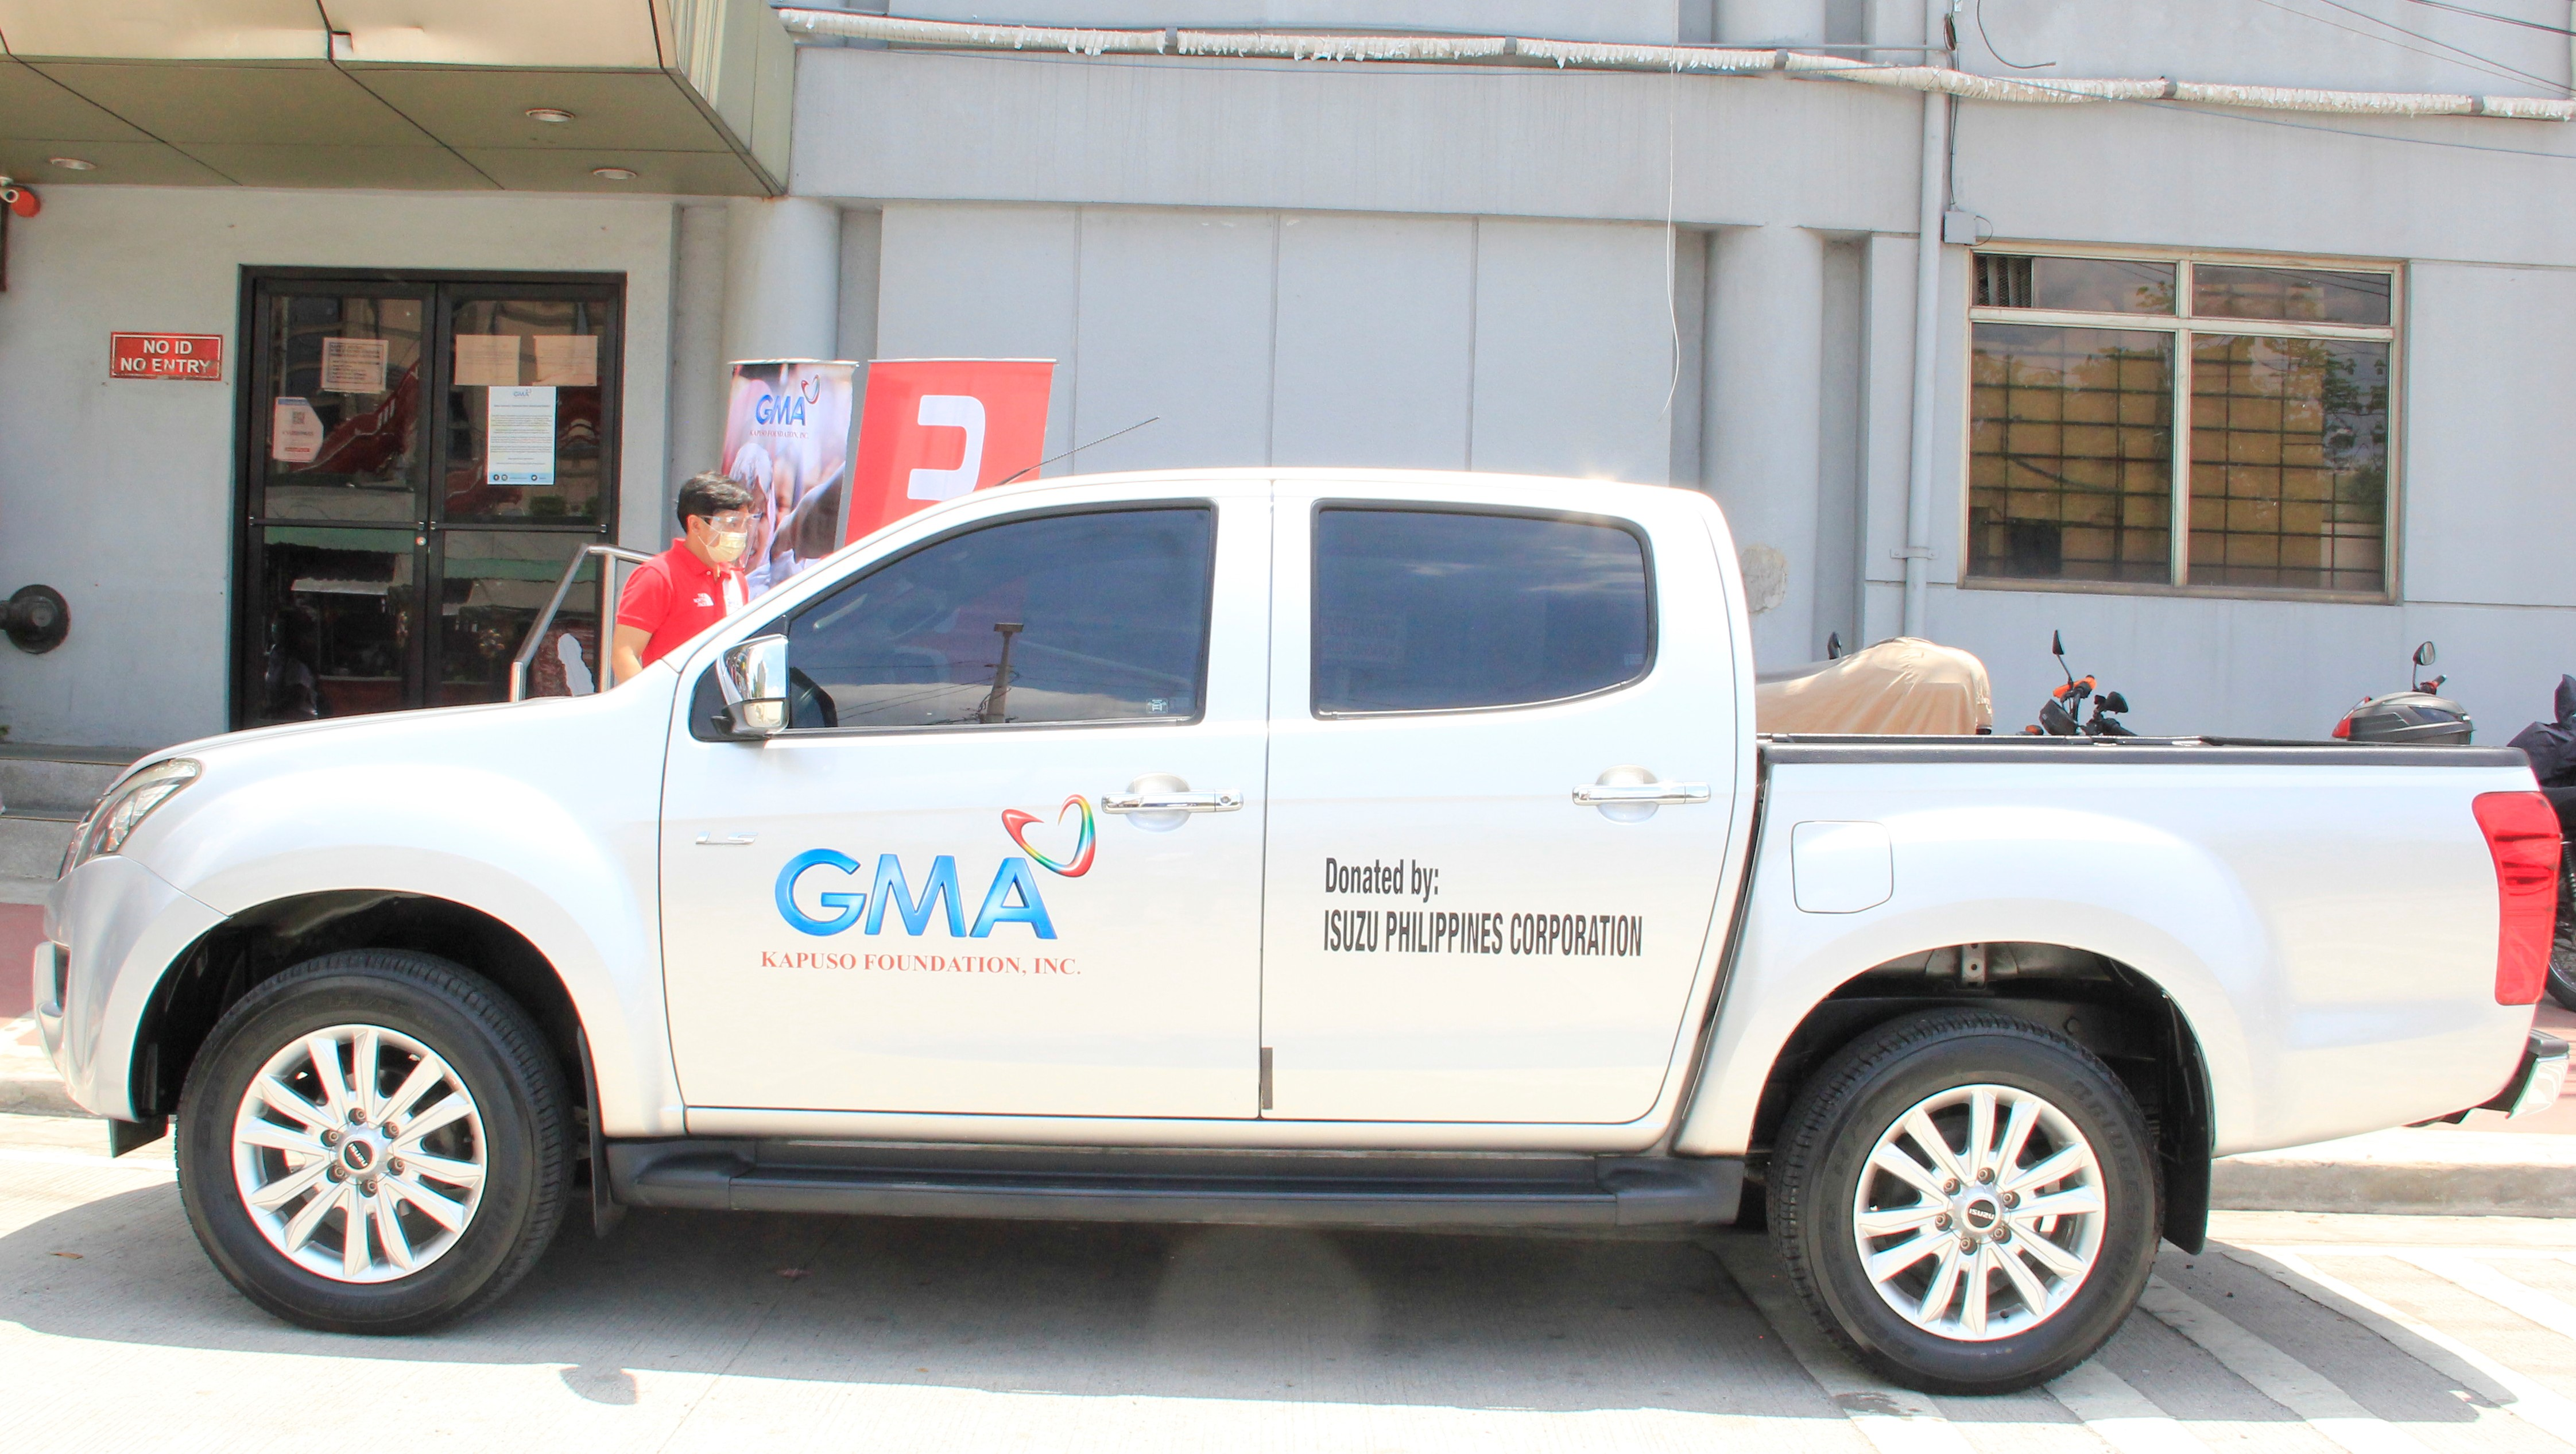 ISUZU PHILIPPINES SUPPORTS GMA KAPUSO FOUNDATION IN FIGHT AGAINST COVID-19 image